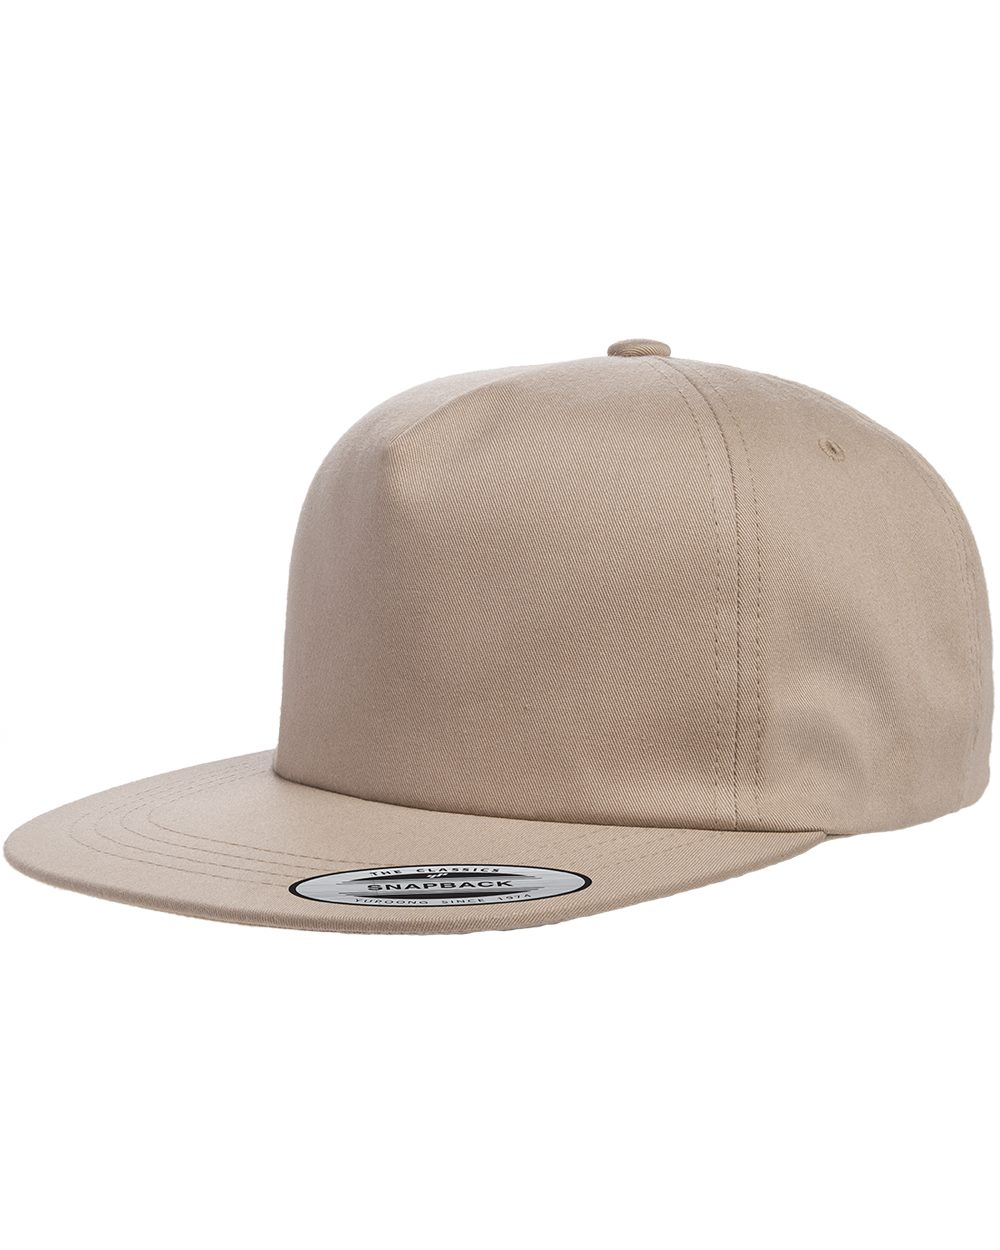 Yupoong 6502 - Unstructured Five-Panel Snapback Cap  3.88 - Headwear 7a8c4d84b22e